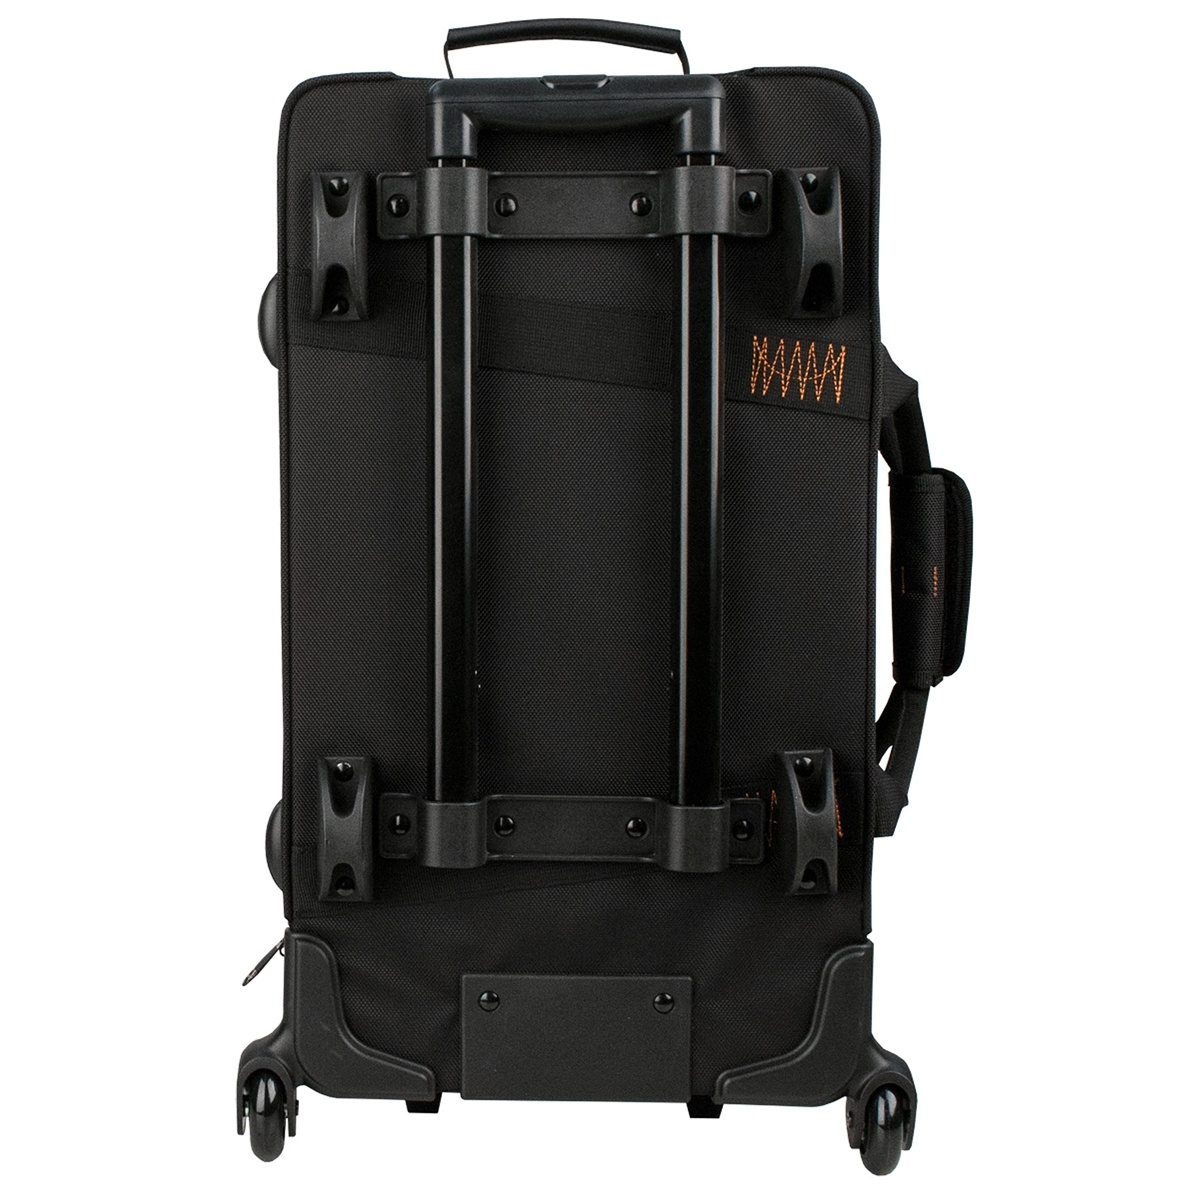 Protec Protec Trumpet / Auxiliary Combo PRO PAC Case with Wheels